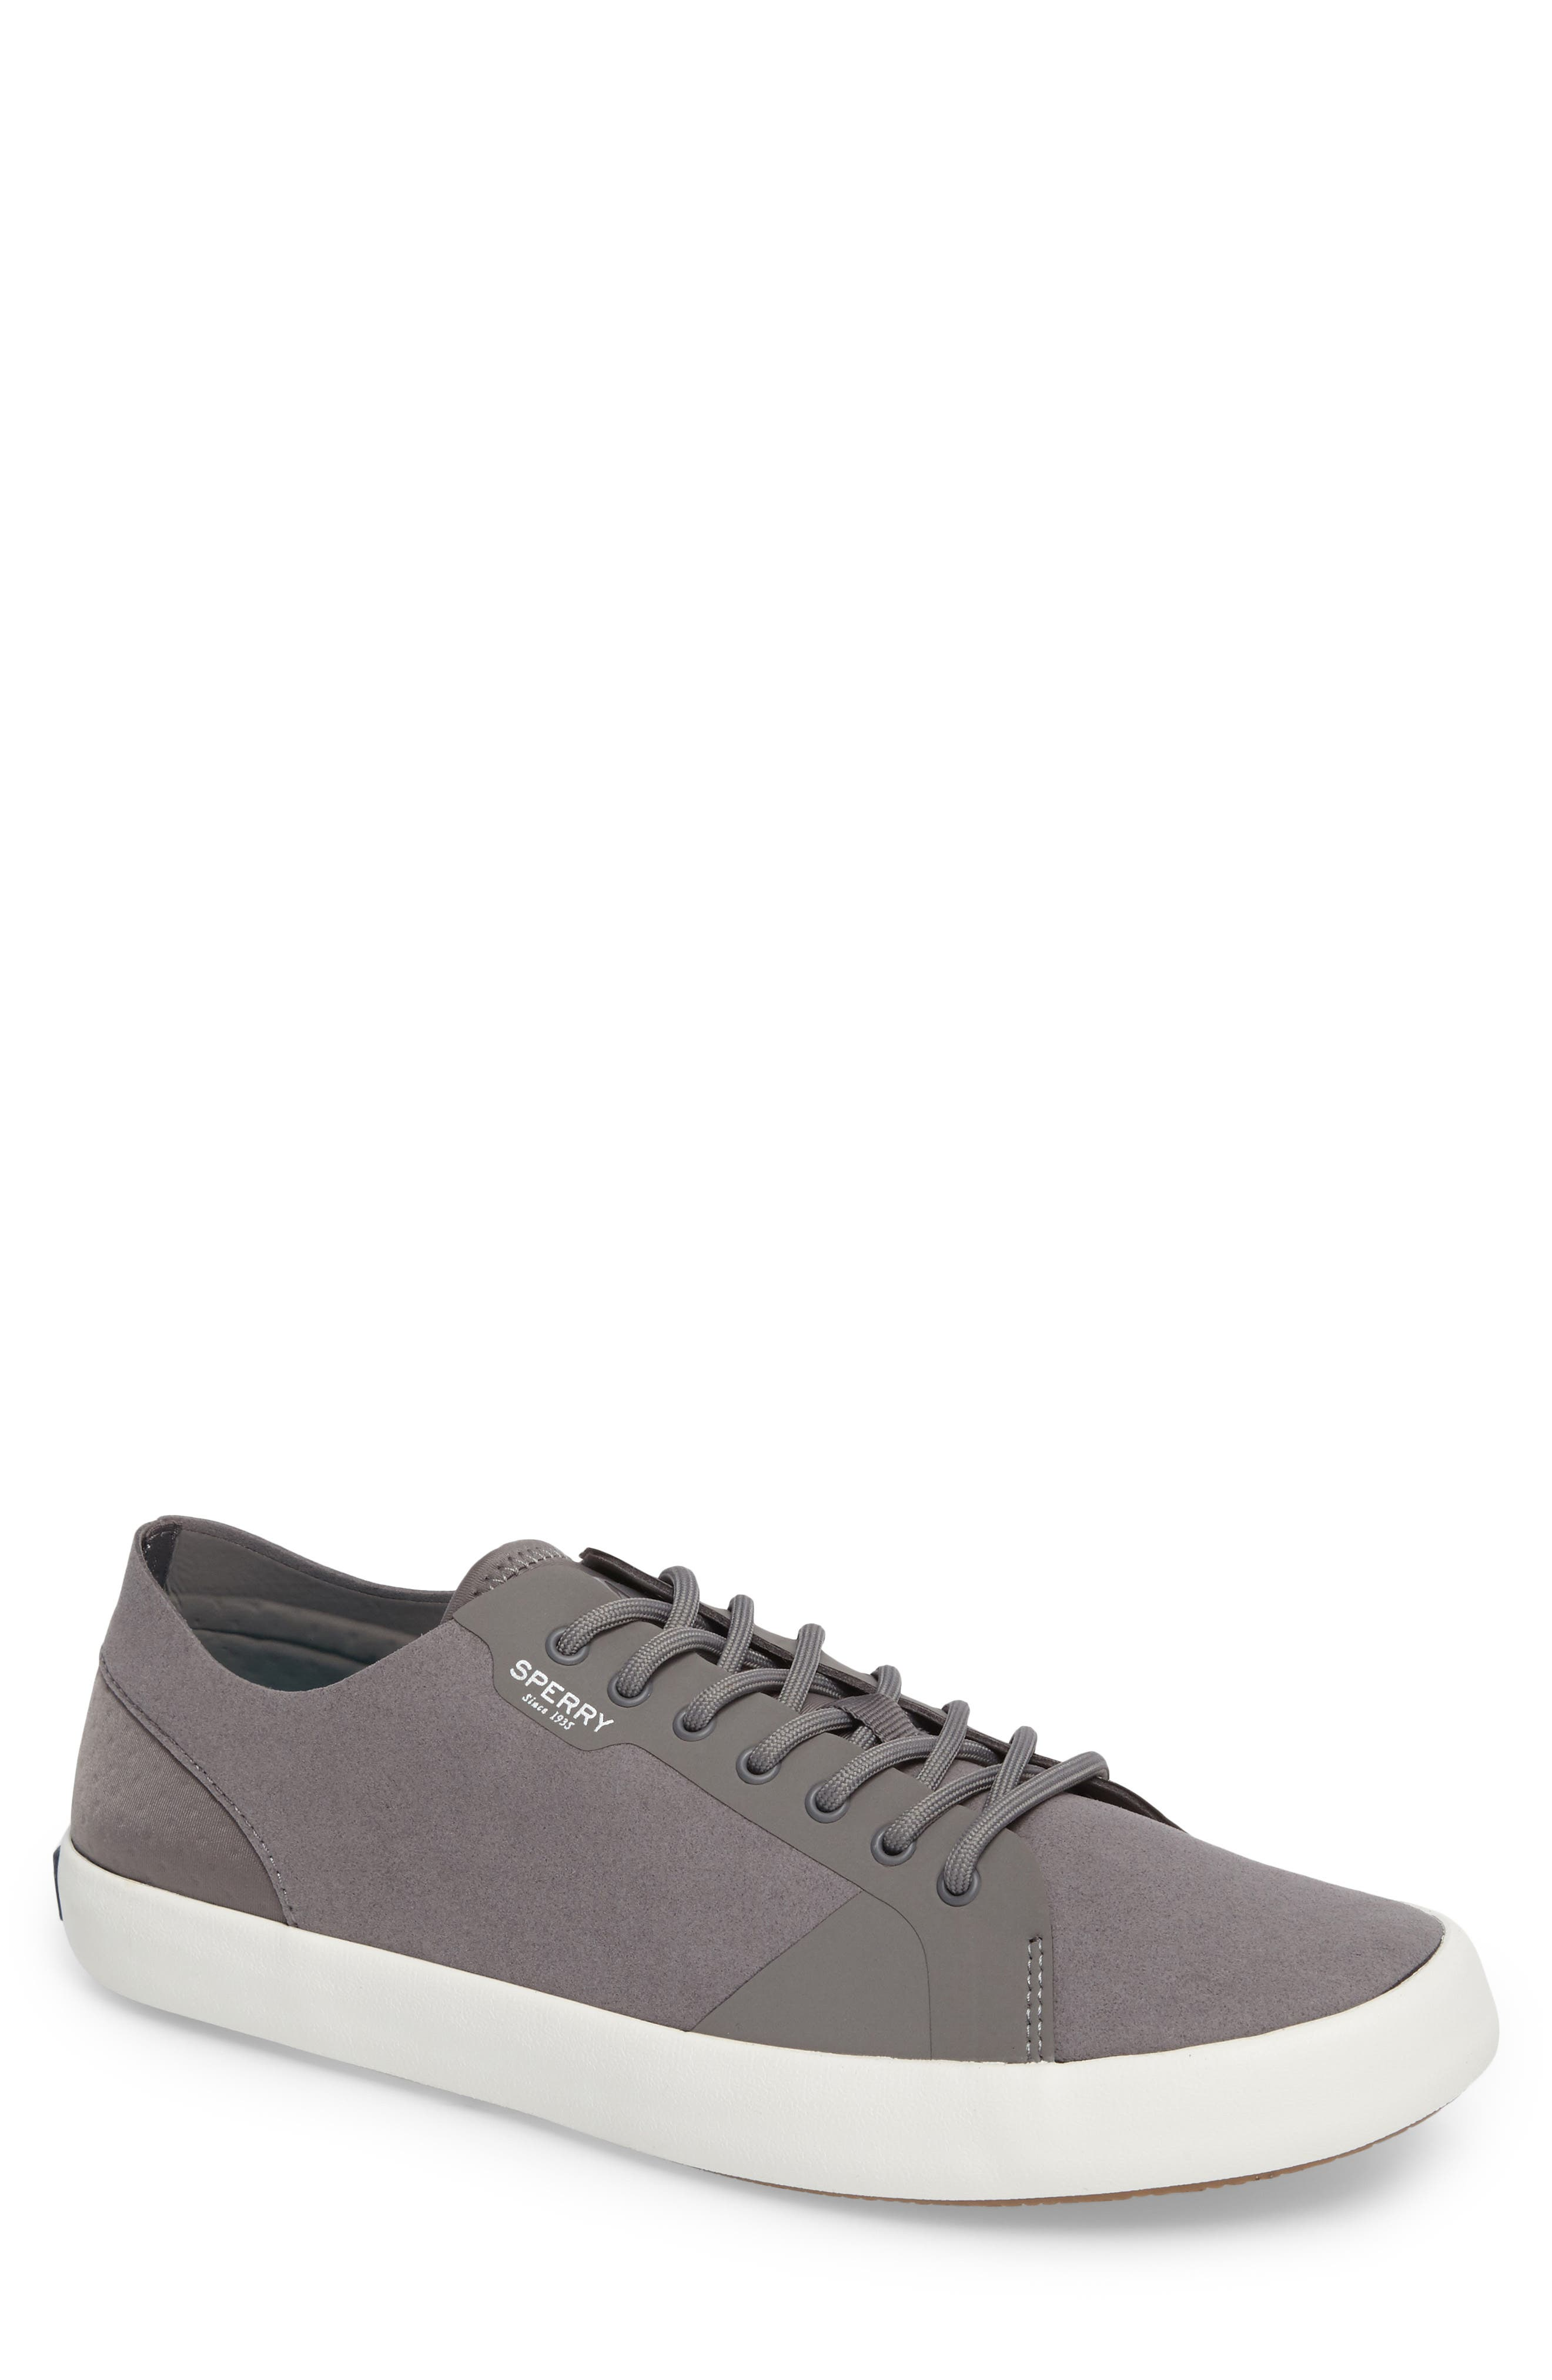 Flex Deck LTT Sneaker,                         Main,                         color, GREY